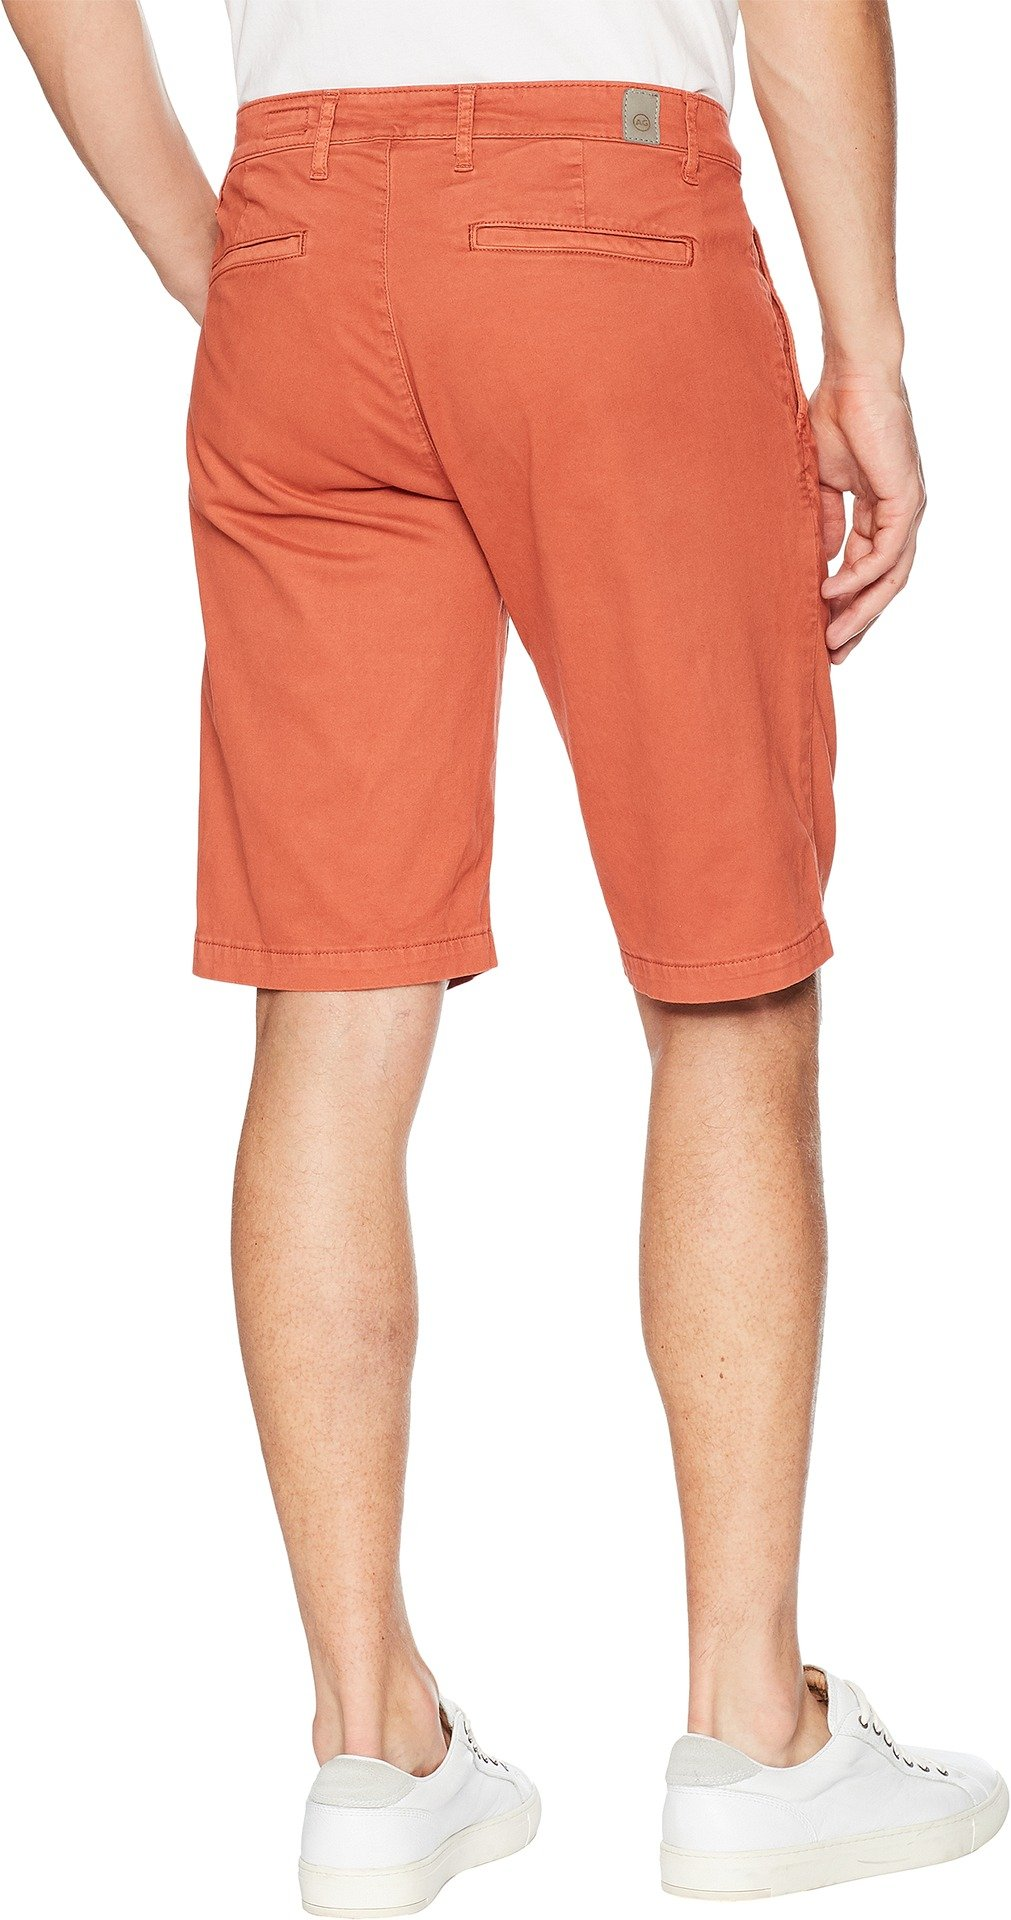 AG Adriano Goldschmied Men's Griffin Shorts in Sulfur Rosso Red Sulfur Rosso Red 36 11 by AG Adriano Goldschmied (Image #3)